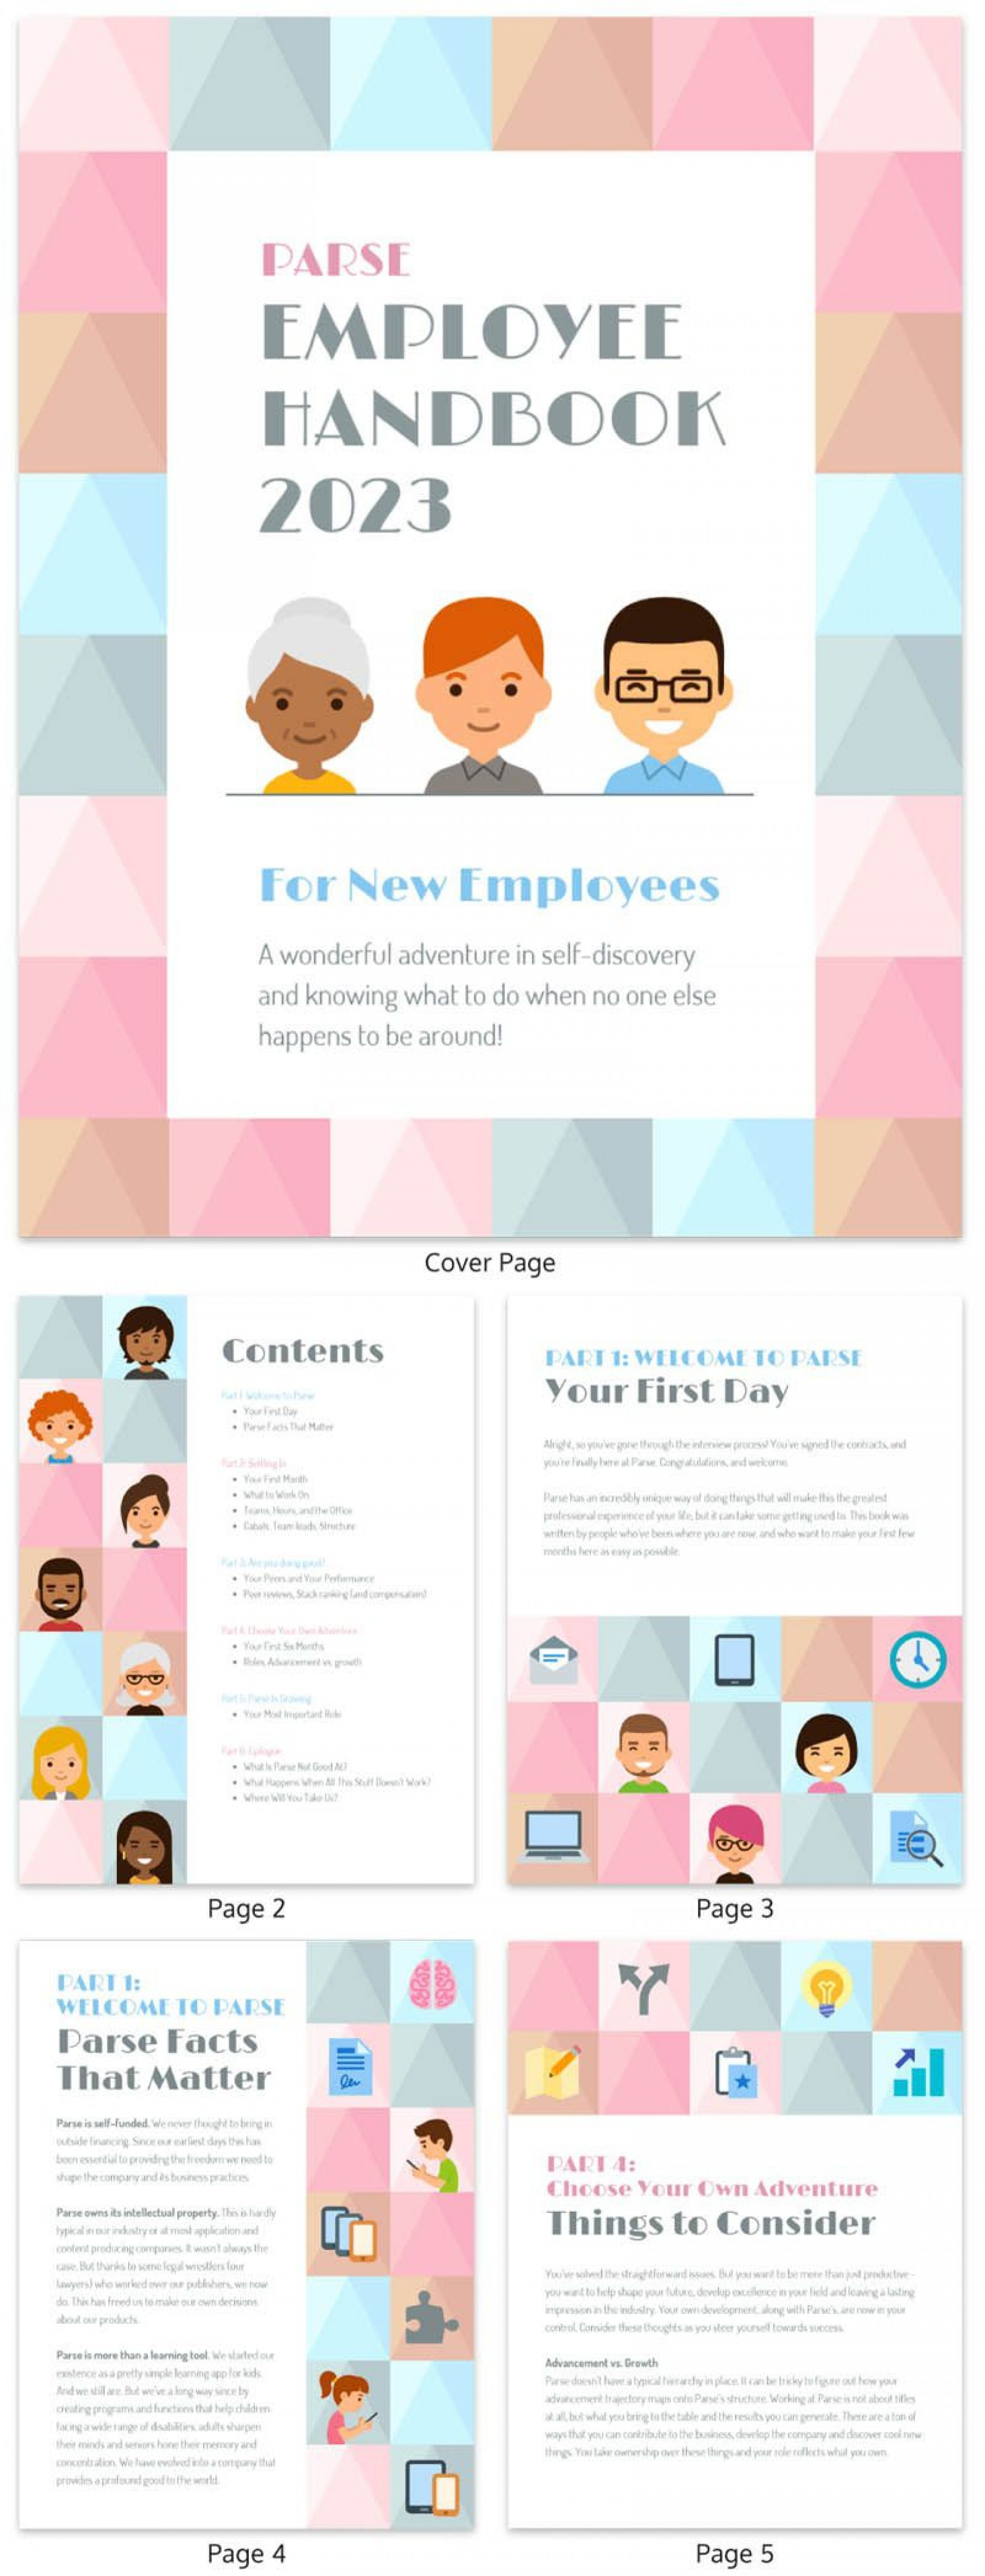 008 Beautiful Free Employee Handbook Template Photo  Templates Sample Canada Philippine In Singapore1920